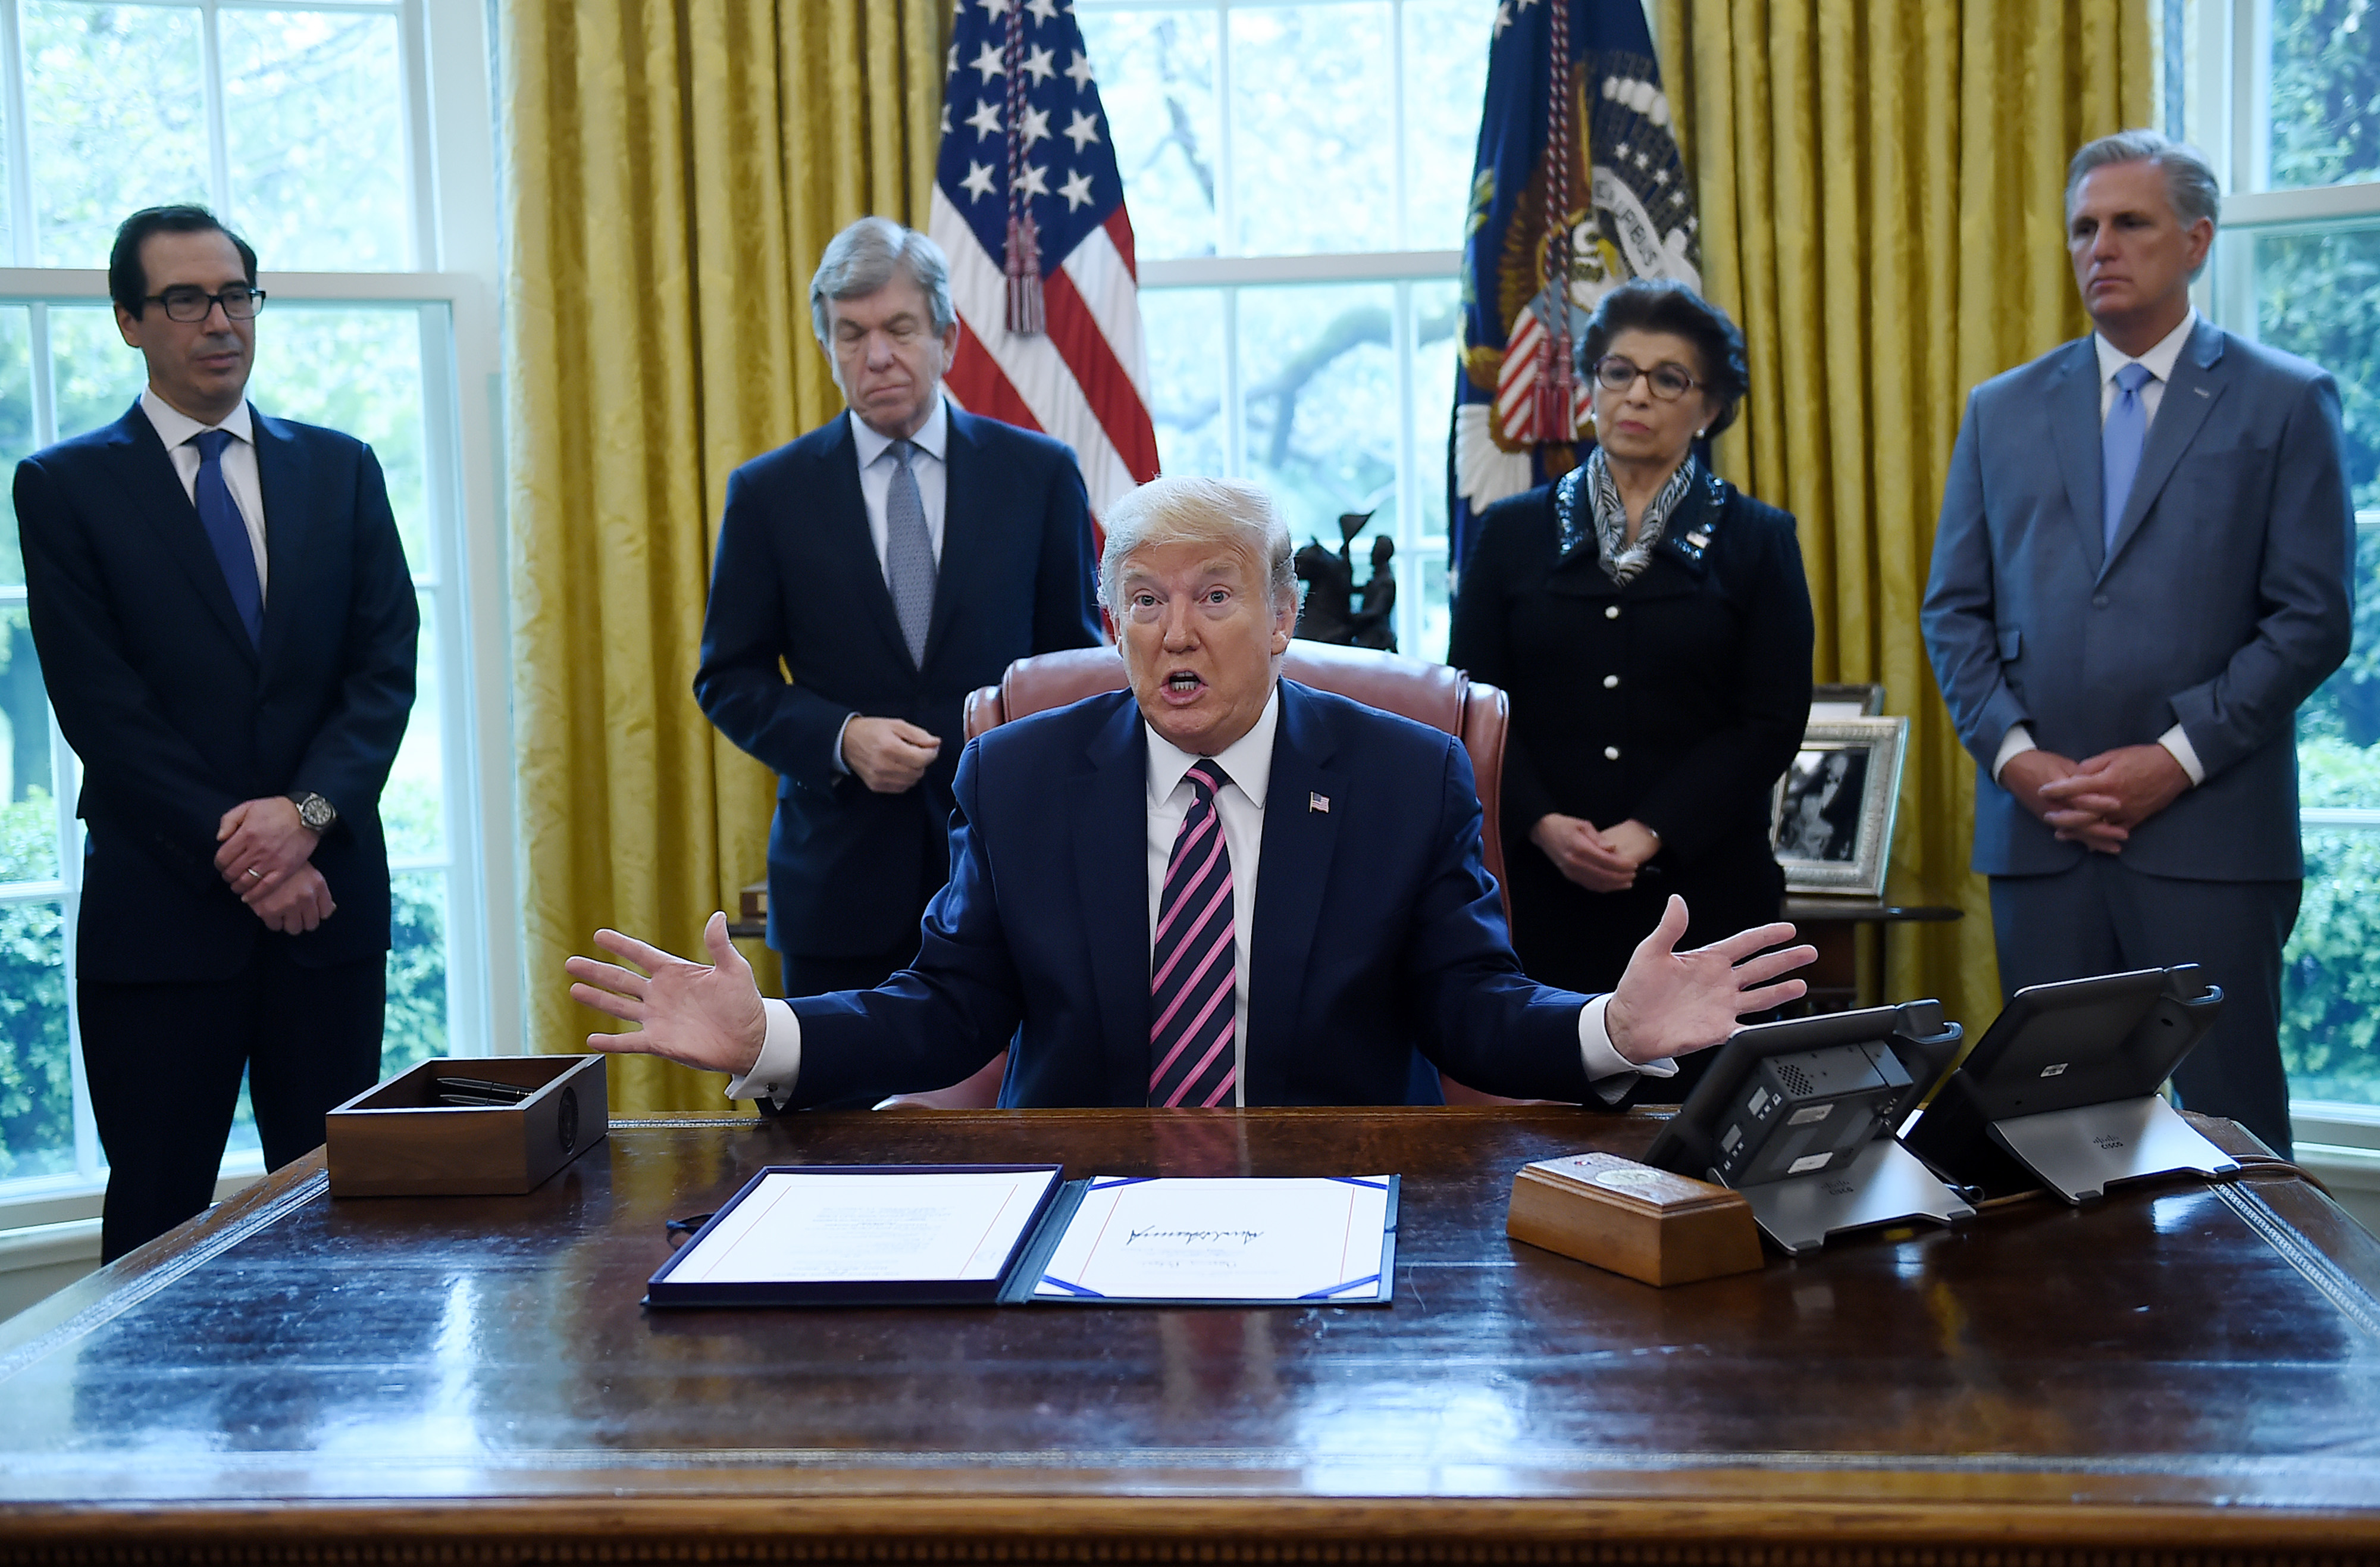 US President Donald Trump speaks after signing the Paycheck Protection Program and Health Care Enhancement Act in the Oval Office of the White House in Washington, DC, on April 24, 2020. With trump are (L-R) US Secretary of the Treasury Steve Mnuchin, US Republican Senator Roy Blunt of Missouri, Administrator of the Small Business Administration Jovita Carranza and House Minority Leader, Republican Representative Kevin McCarthy of California. - The $483 billion stimulus act will back small businesses on the brink of bankruptcy, and allocate more money for health-care providers and virus testing. (Photo by OLIVIER DOULIERY/AFP via Getty Images)